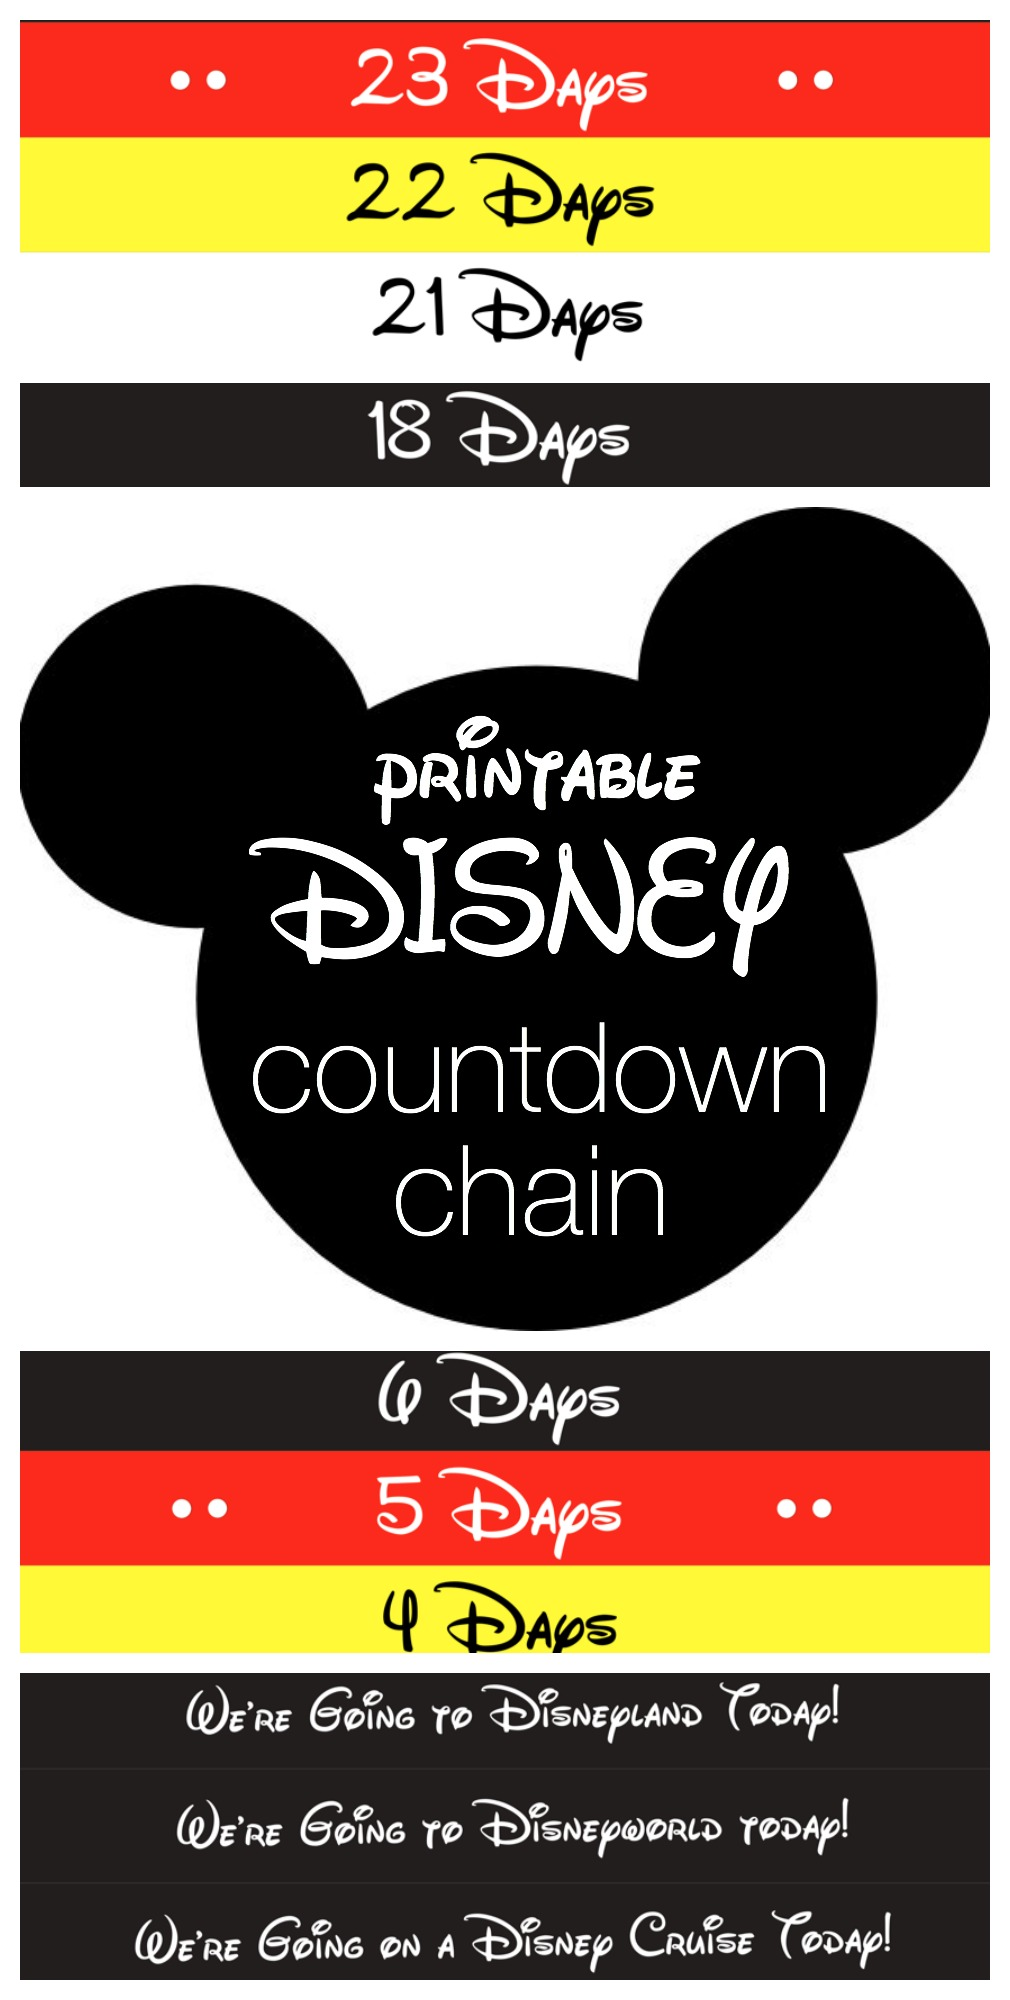 graphic about Disney Countdown Calendar Printable titled Disney Countdown Chain